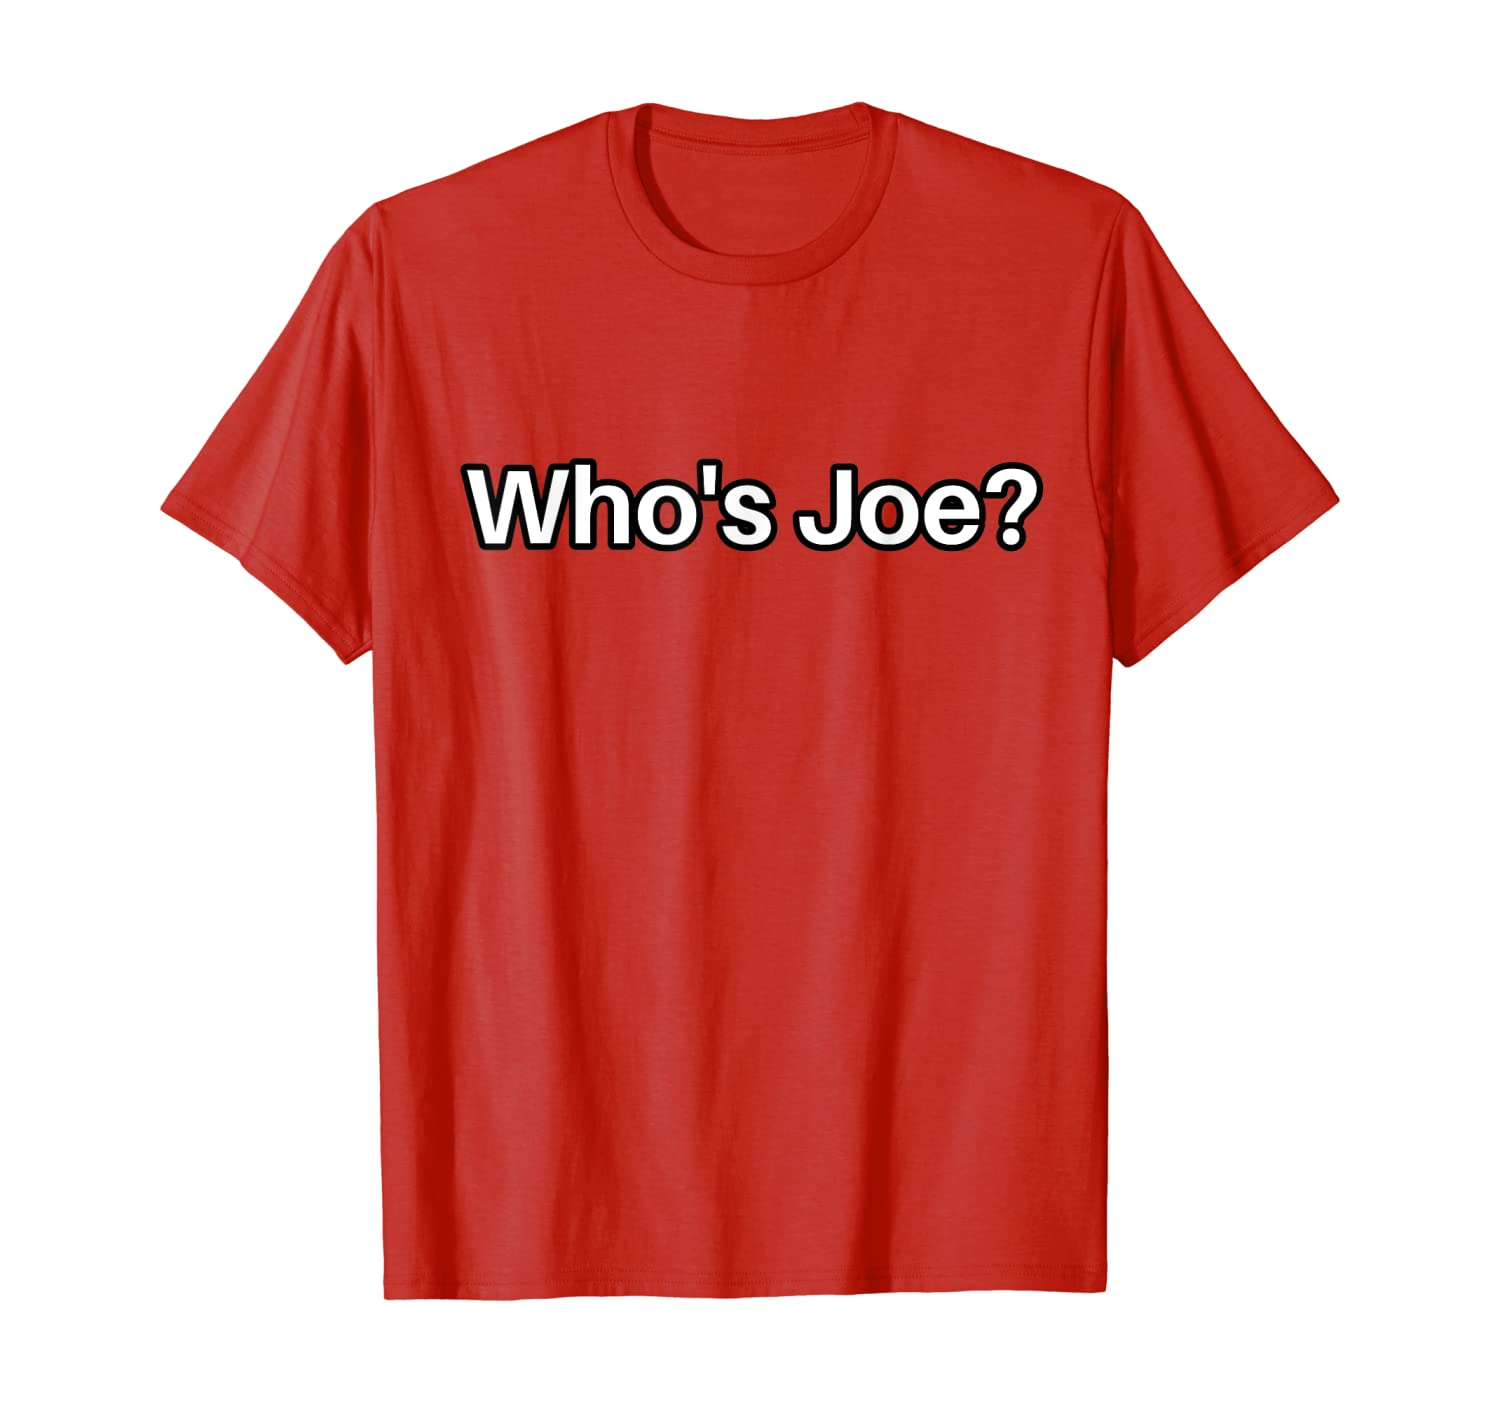 Who S Joe Mama Meme Dont Ask Who Joe Is Knock Knock Pun Gift T Shirt Deutschland Osterreich Meinshirts De Enjoy the meme 'whos joe?' uploaded by mrliro. meinshirts de